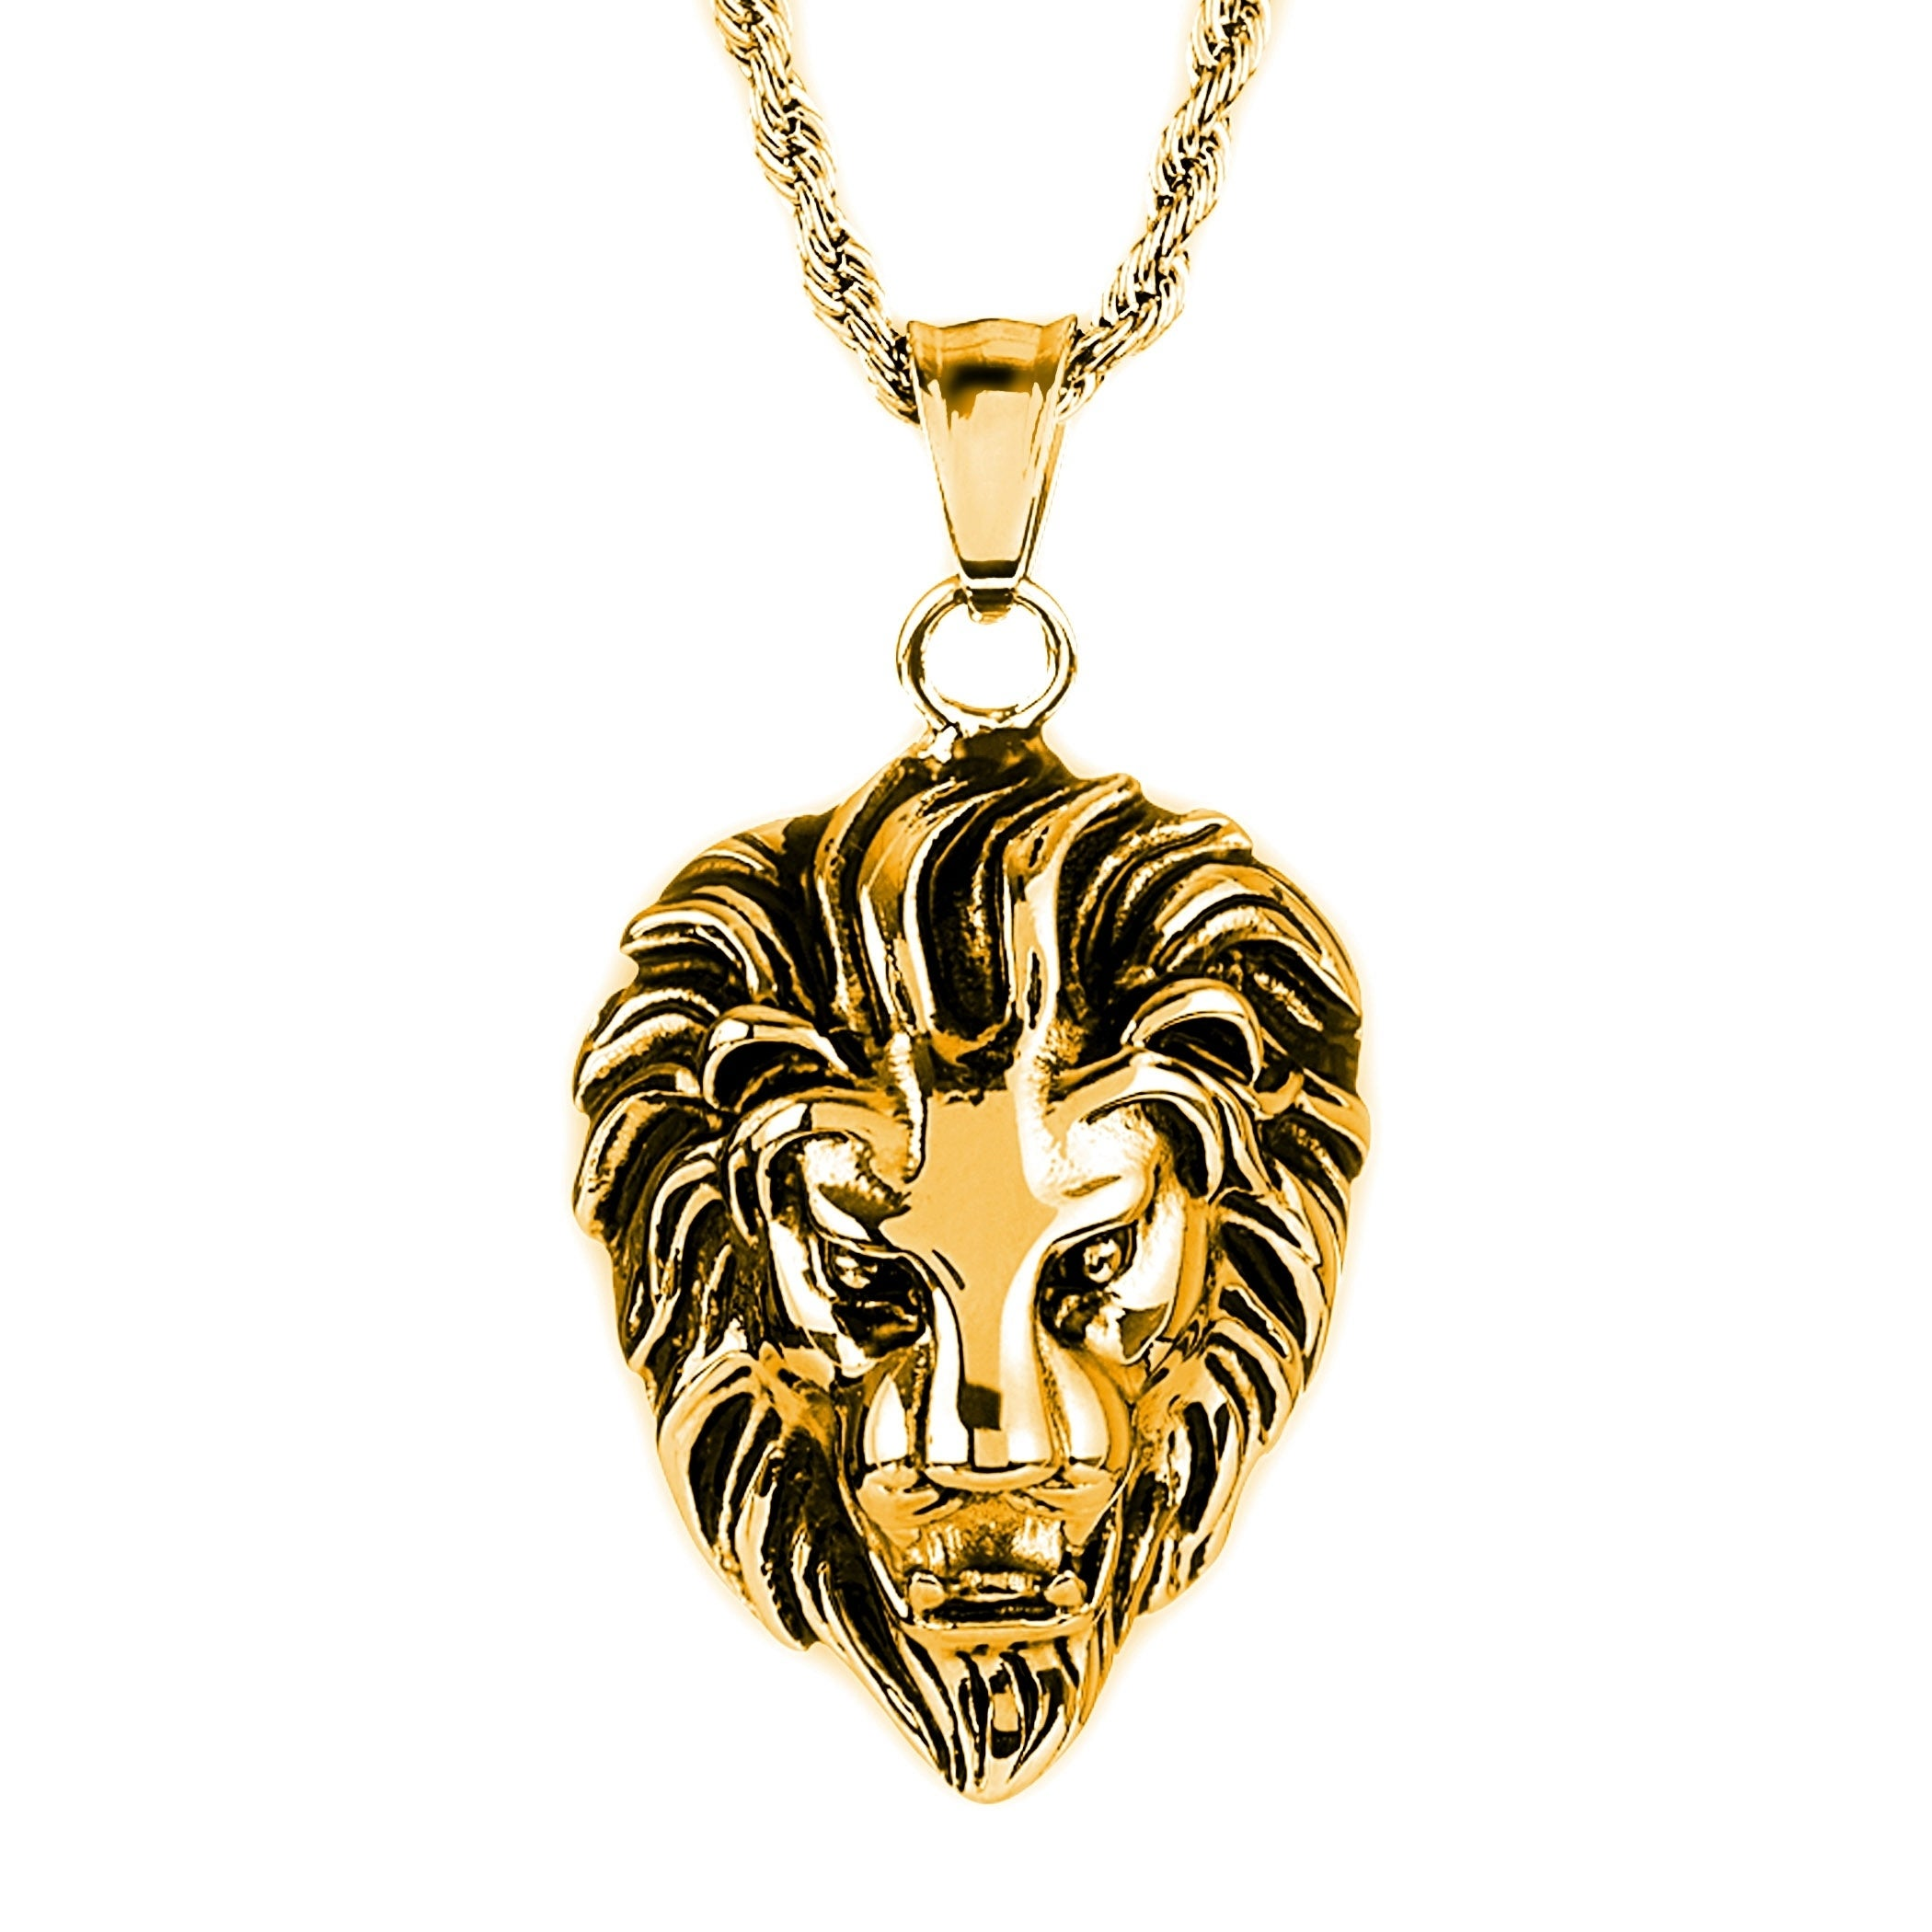 5c07bd2cdeb5d Shop Crucible Polished Stainless Steel Lion Head Pendant Necklace ...